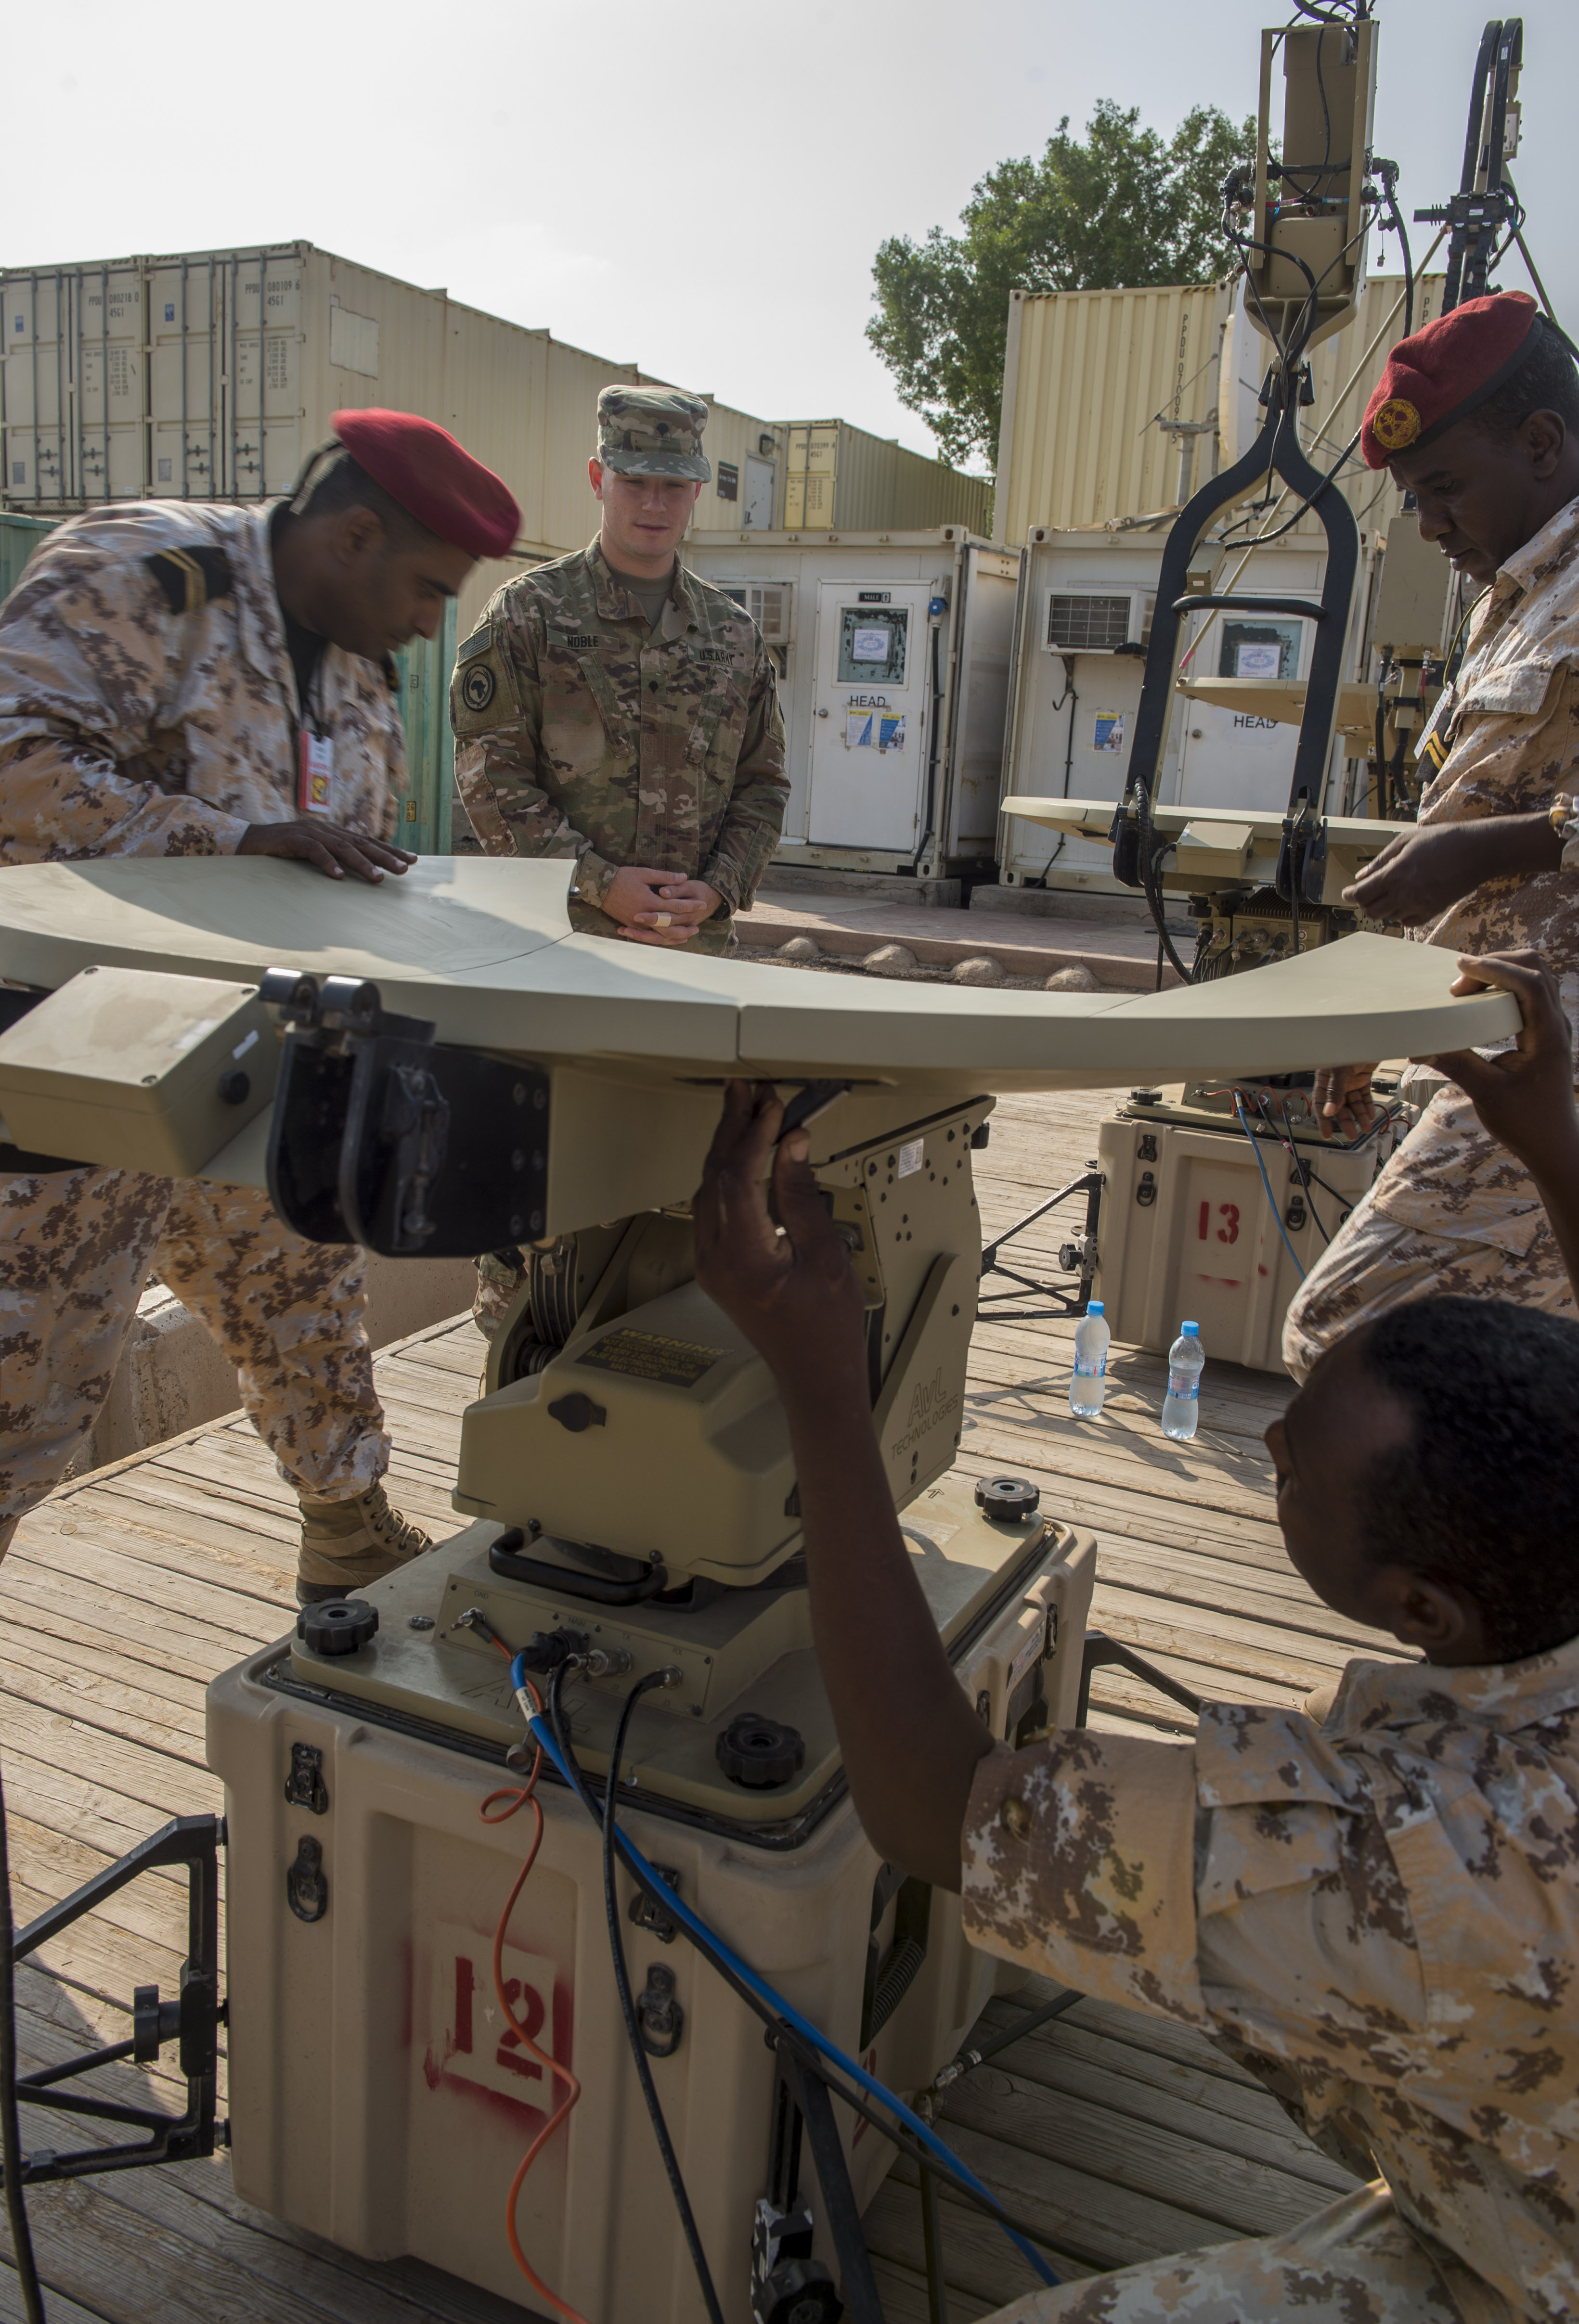 U.S. Army Spc. Taylor Noble, a multisystem transmission operator and maintainer assigned to the Combined Joint Task Force - Horn of Africa (CJTF-HOA) Communications Directorate, watches as service members of the Djibouti Armed Forces (FAD) set up an antenna during a military-to-military exchange course at Camp Lemonnier, Djibouti, Jan. 8, 2018. Throughout a two-week period, communications experts advised Djiboutian service members on how to set up, operate, maintain, and troubleshoot network equipment to increase communication capabilities between African Union Mission in Somalia forces. (U.S. Air Force photo illustration by Staff Sgt. Timothy Moore)